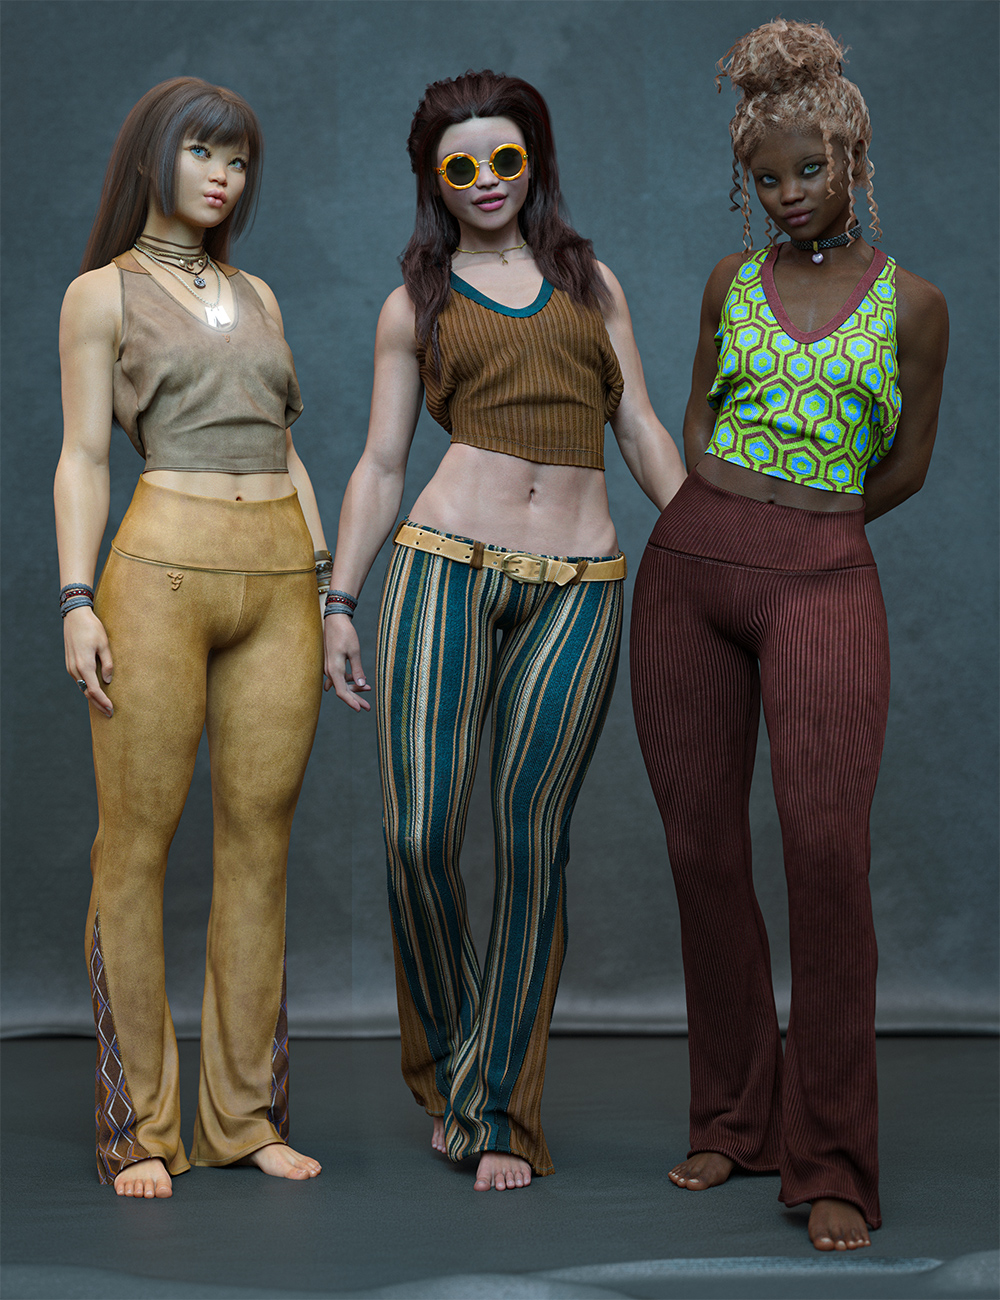 Vintage Styles for Verse Clothing Sets by: Aeon Soul, 3D Models by Daz 3D